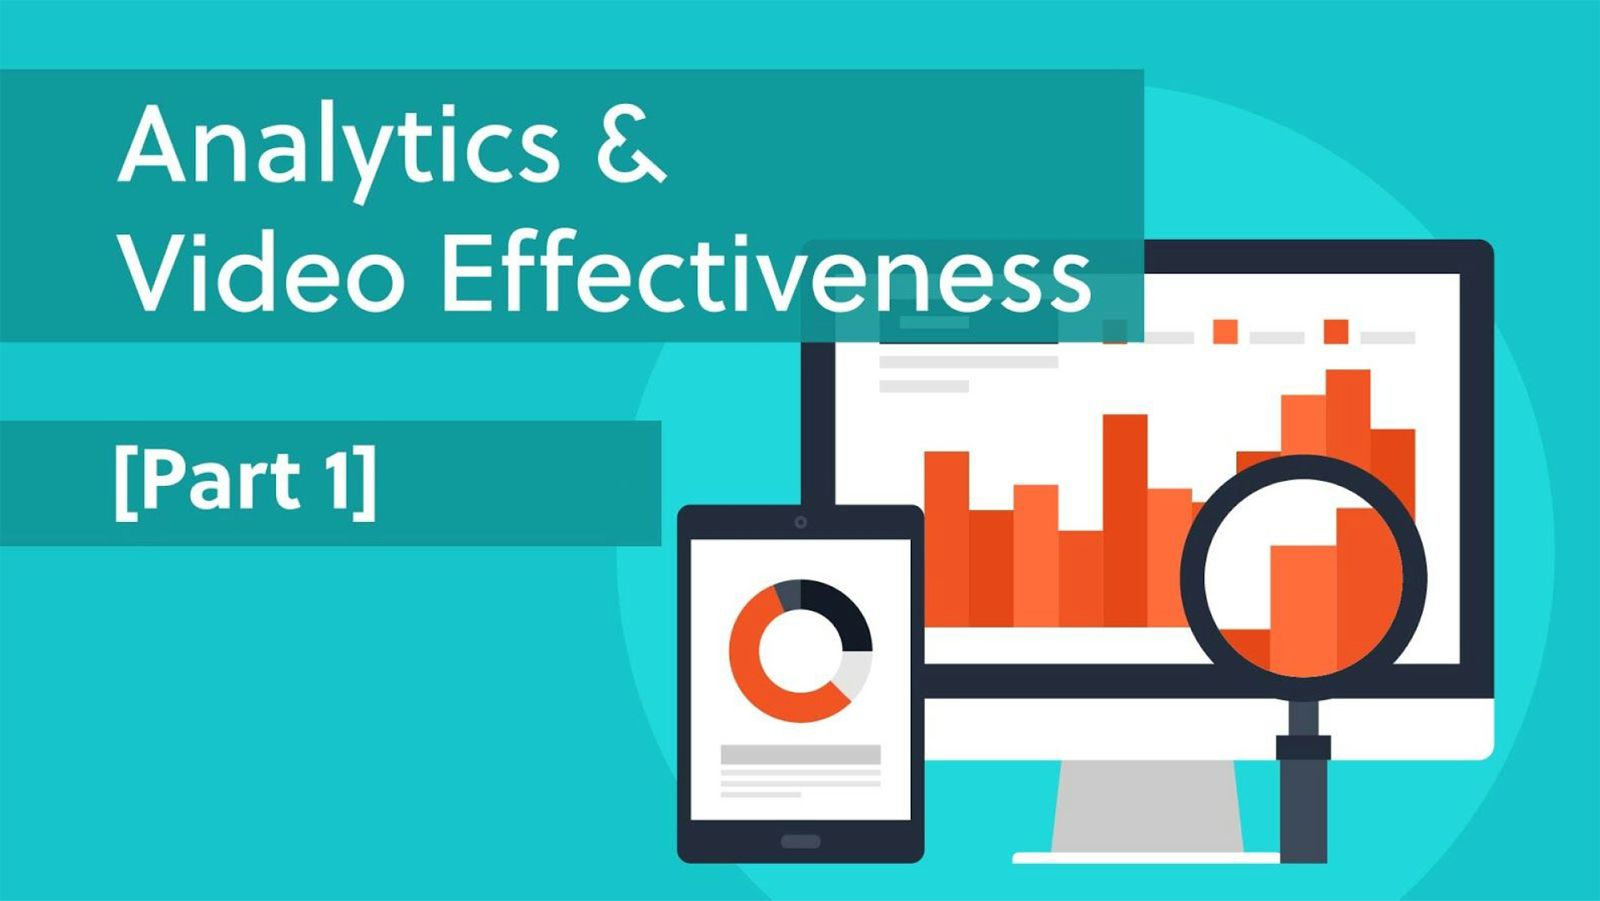 Using Video Analytics to Measure Video Effectiveness [Part 1]